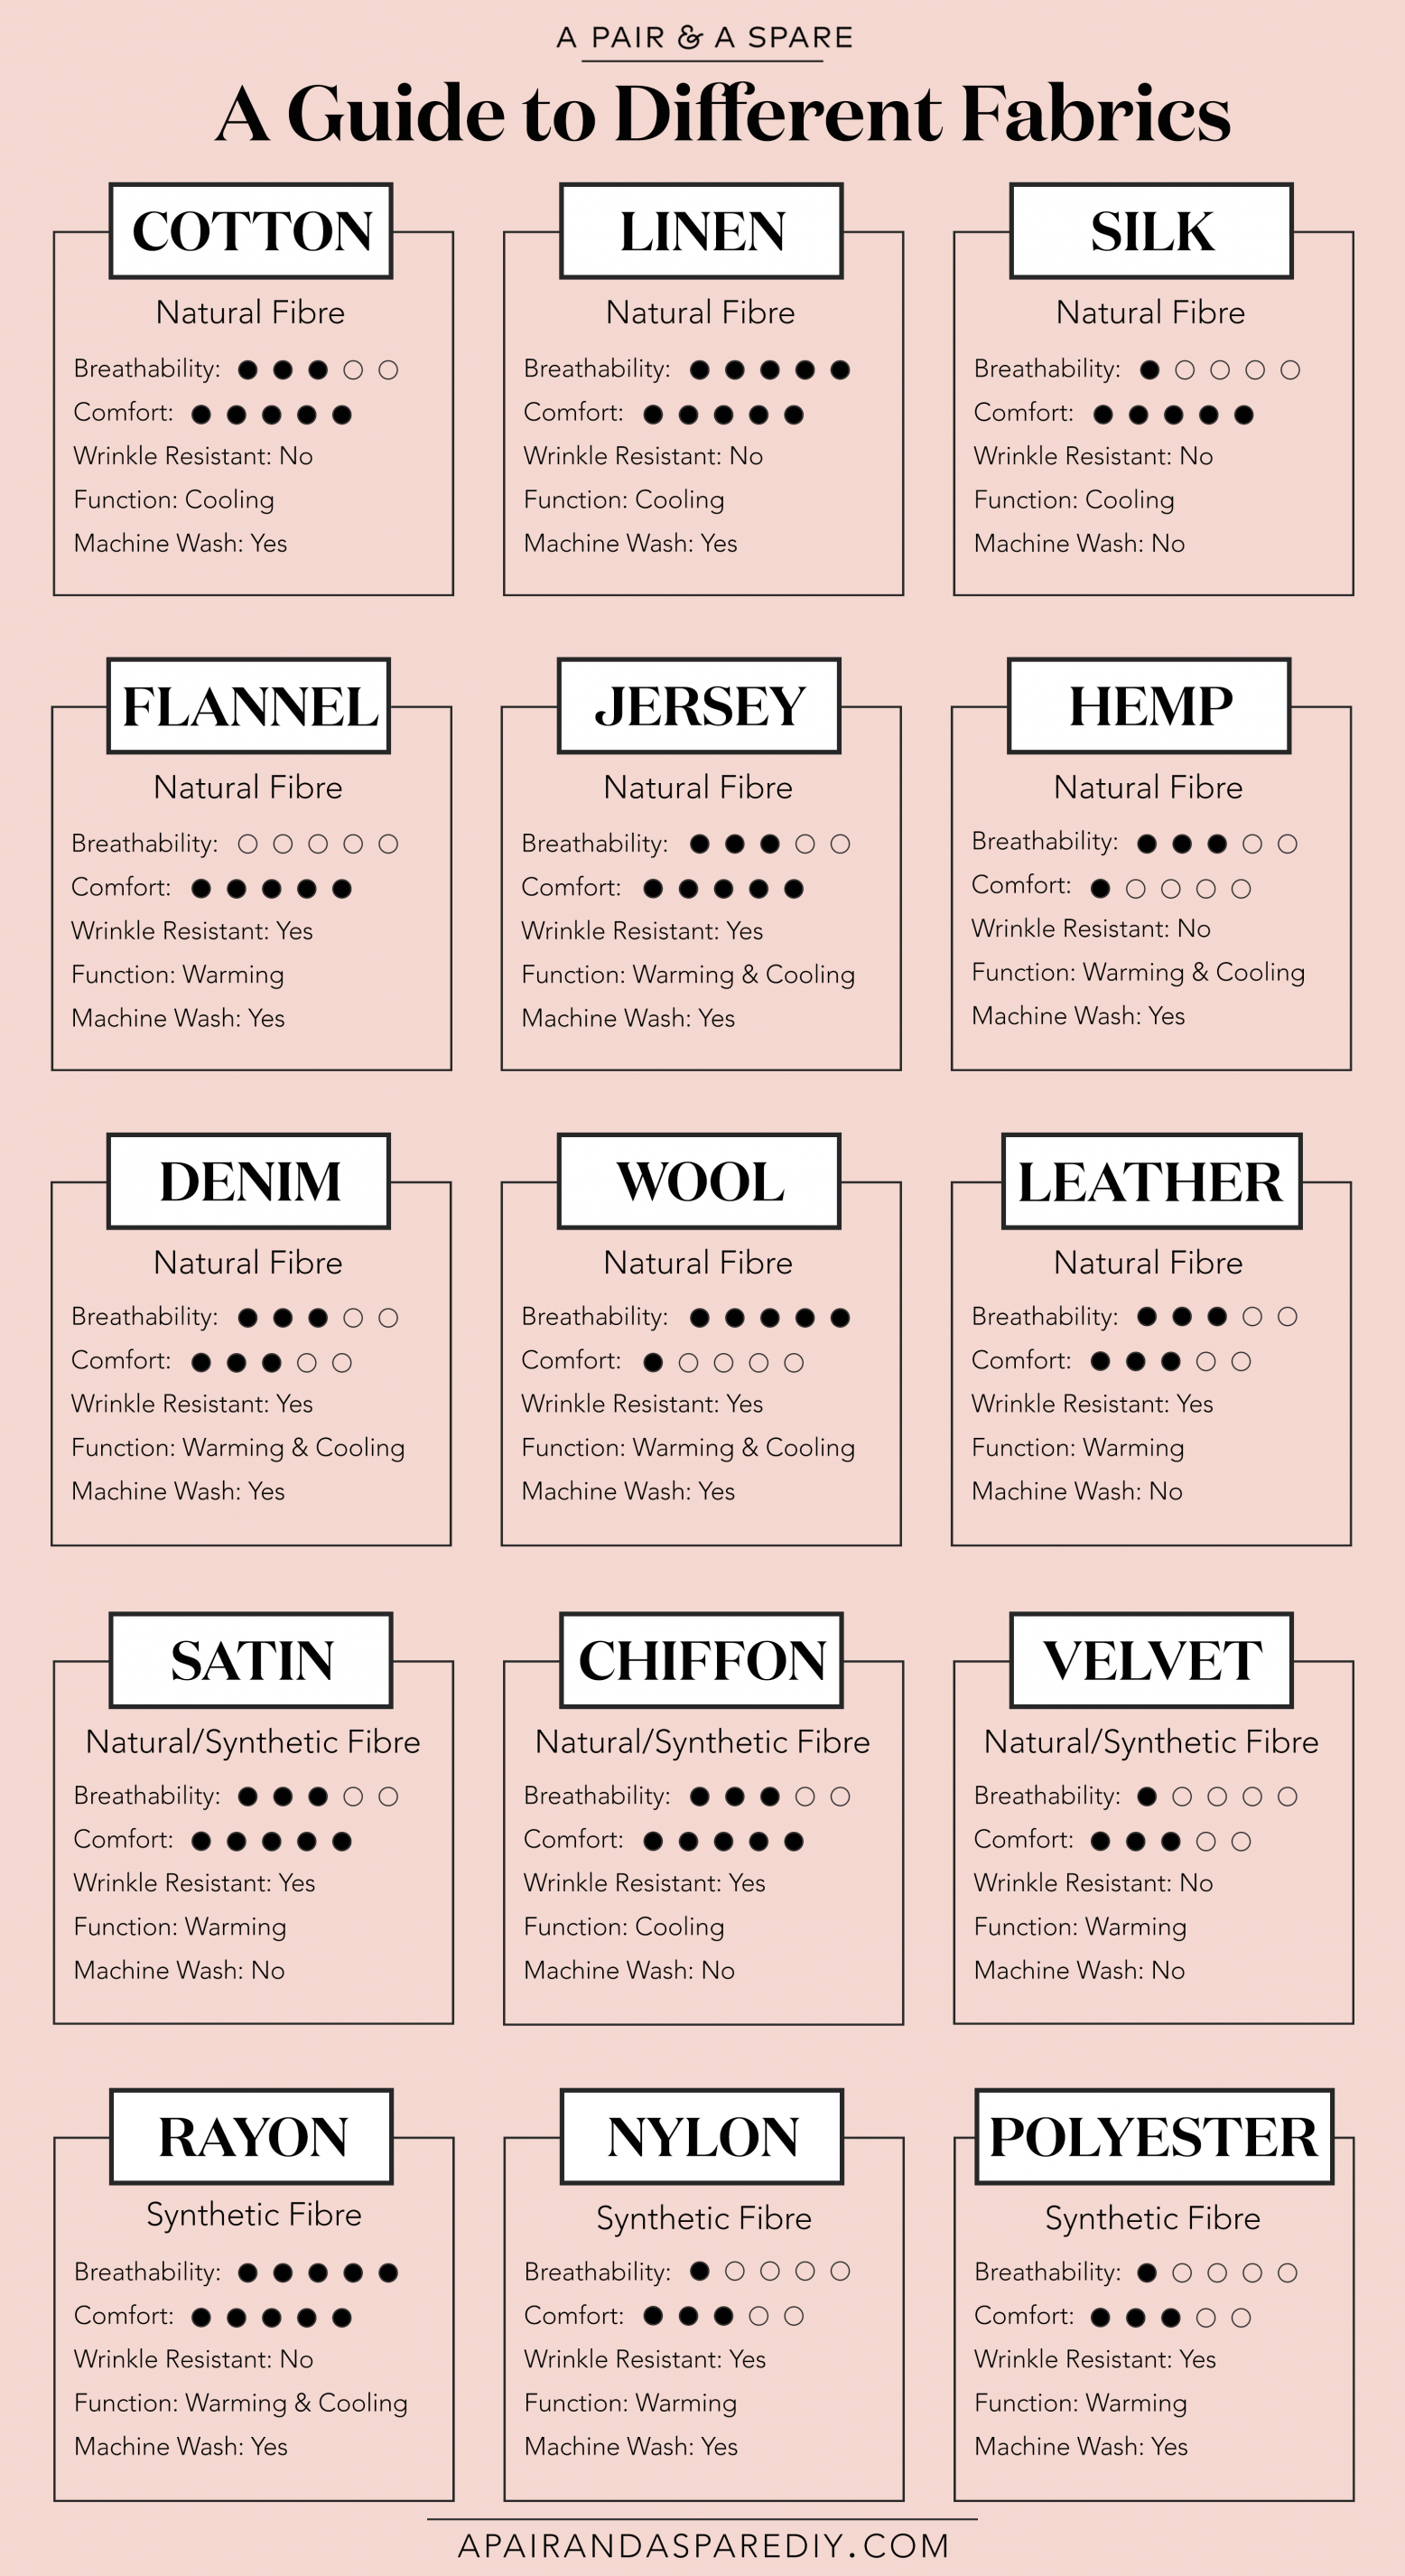 A Guide To Different Fabrics And Their Properties